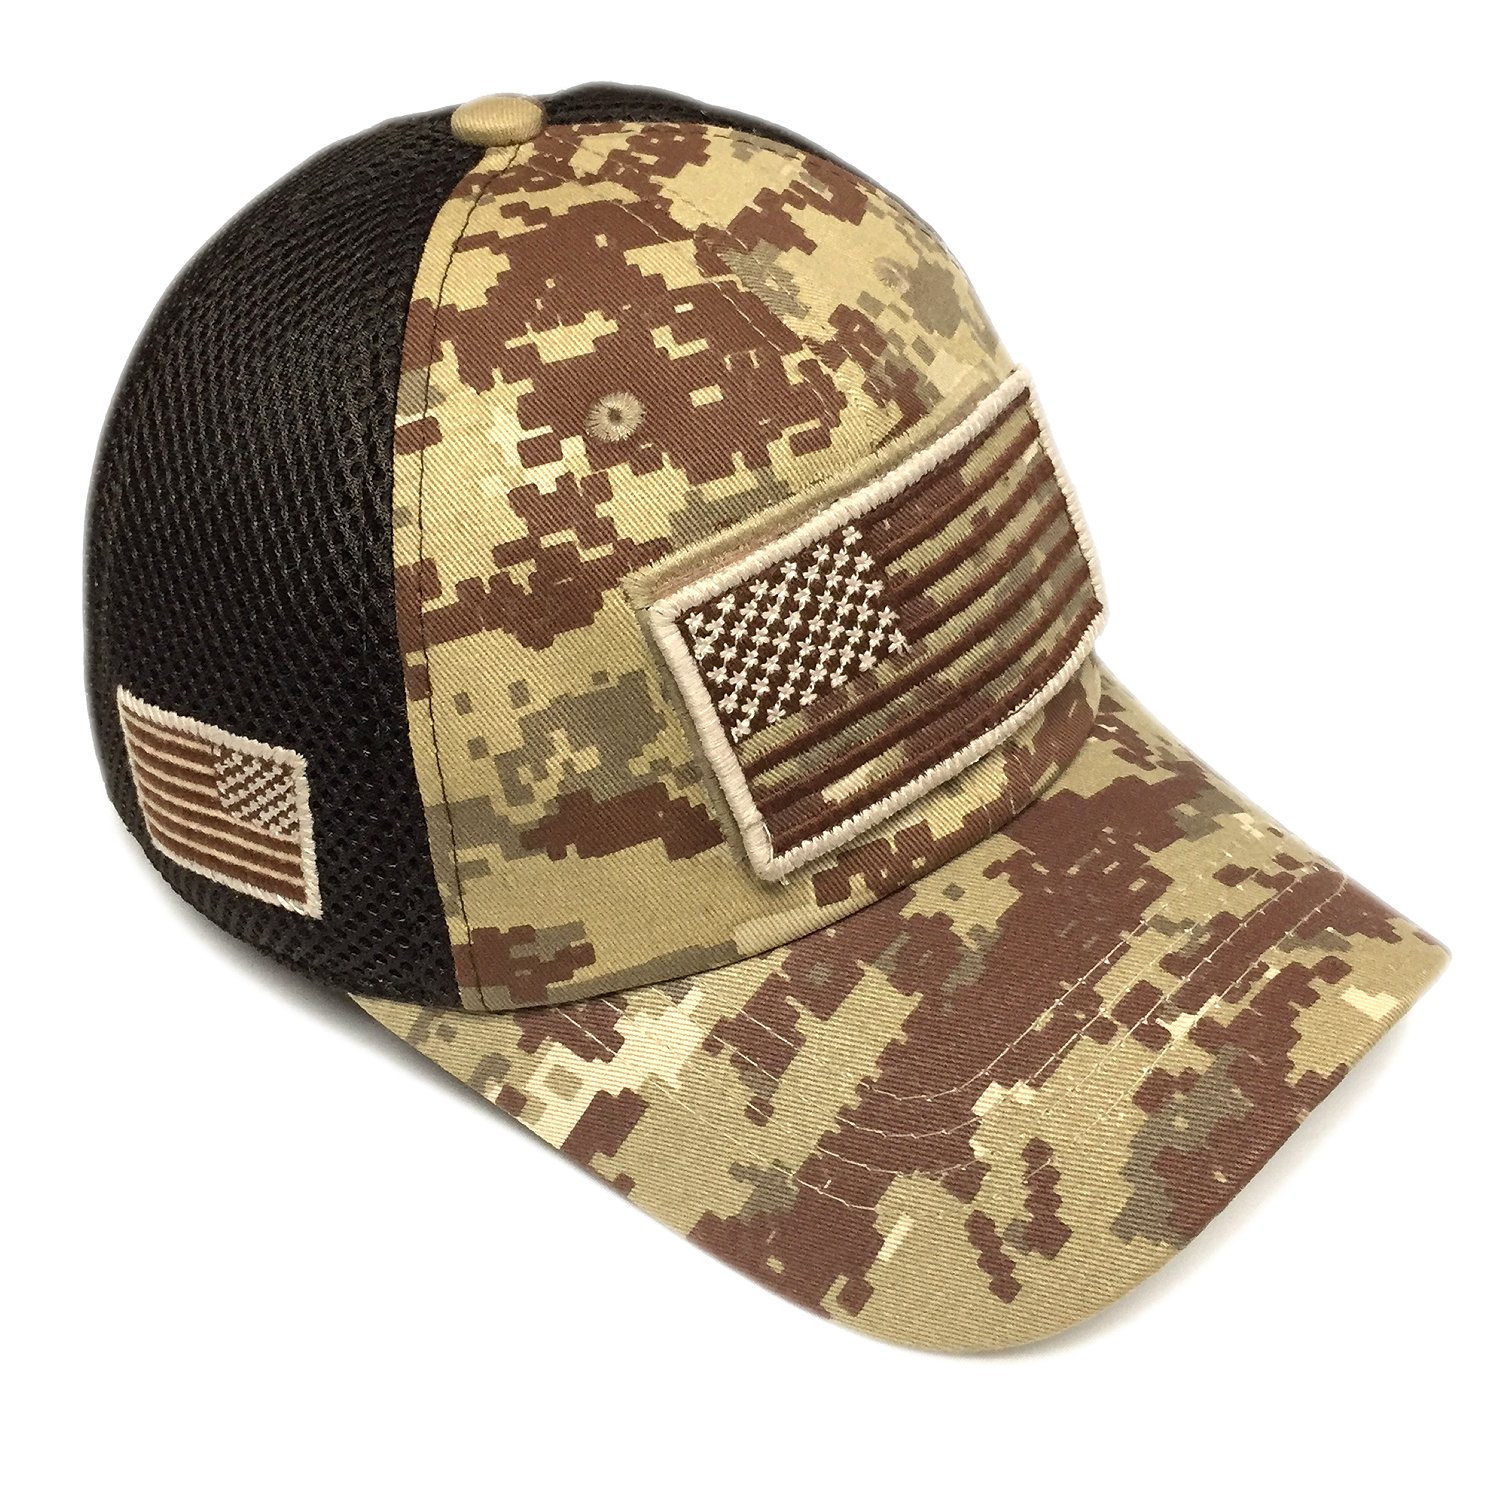 02f90d834b67a Pitbull Military Army Desert Khaki Brown Camo Vintage Cotton Cap USA Flag  Patch Trucker Mesh Baseball Hat Dad Hat Army Gear at Amazon Men s Clothing  store